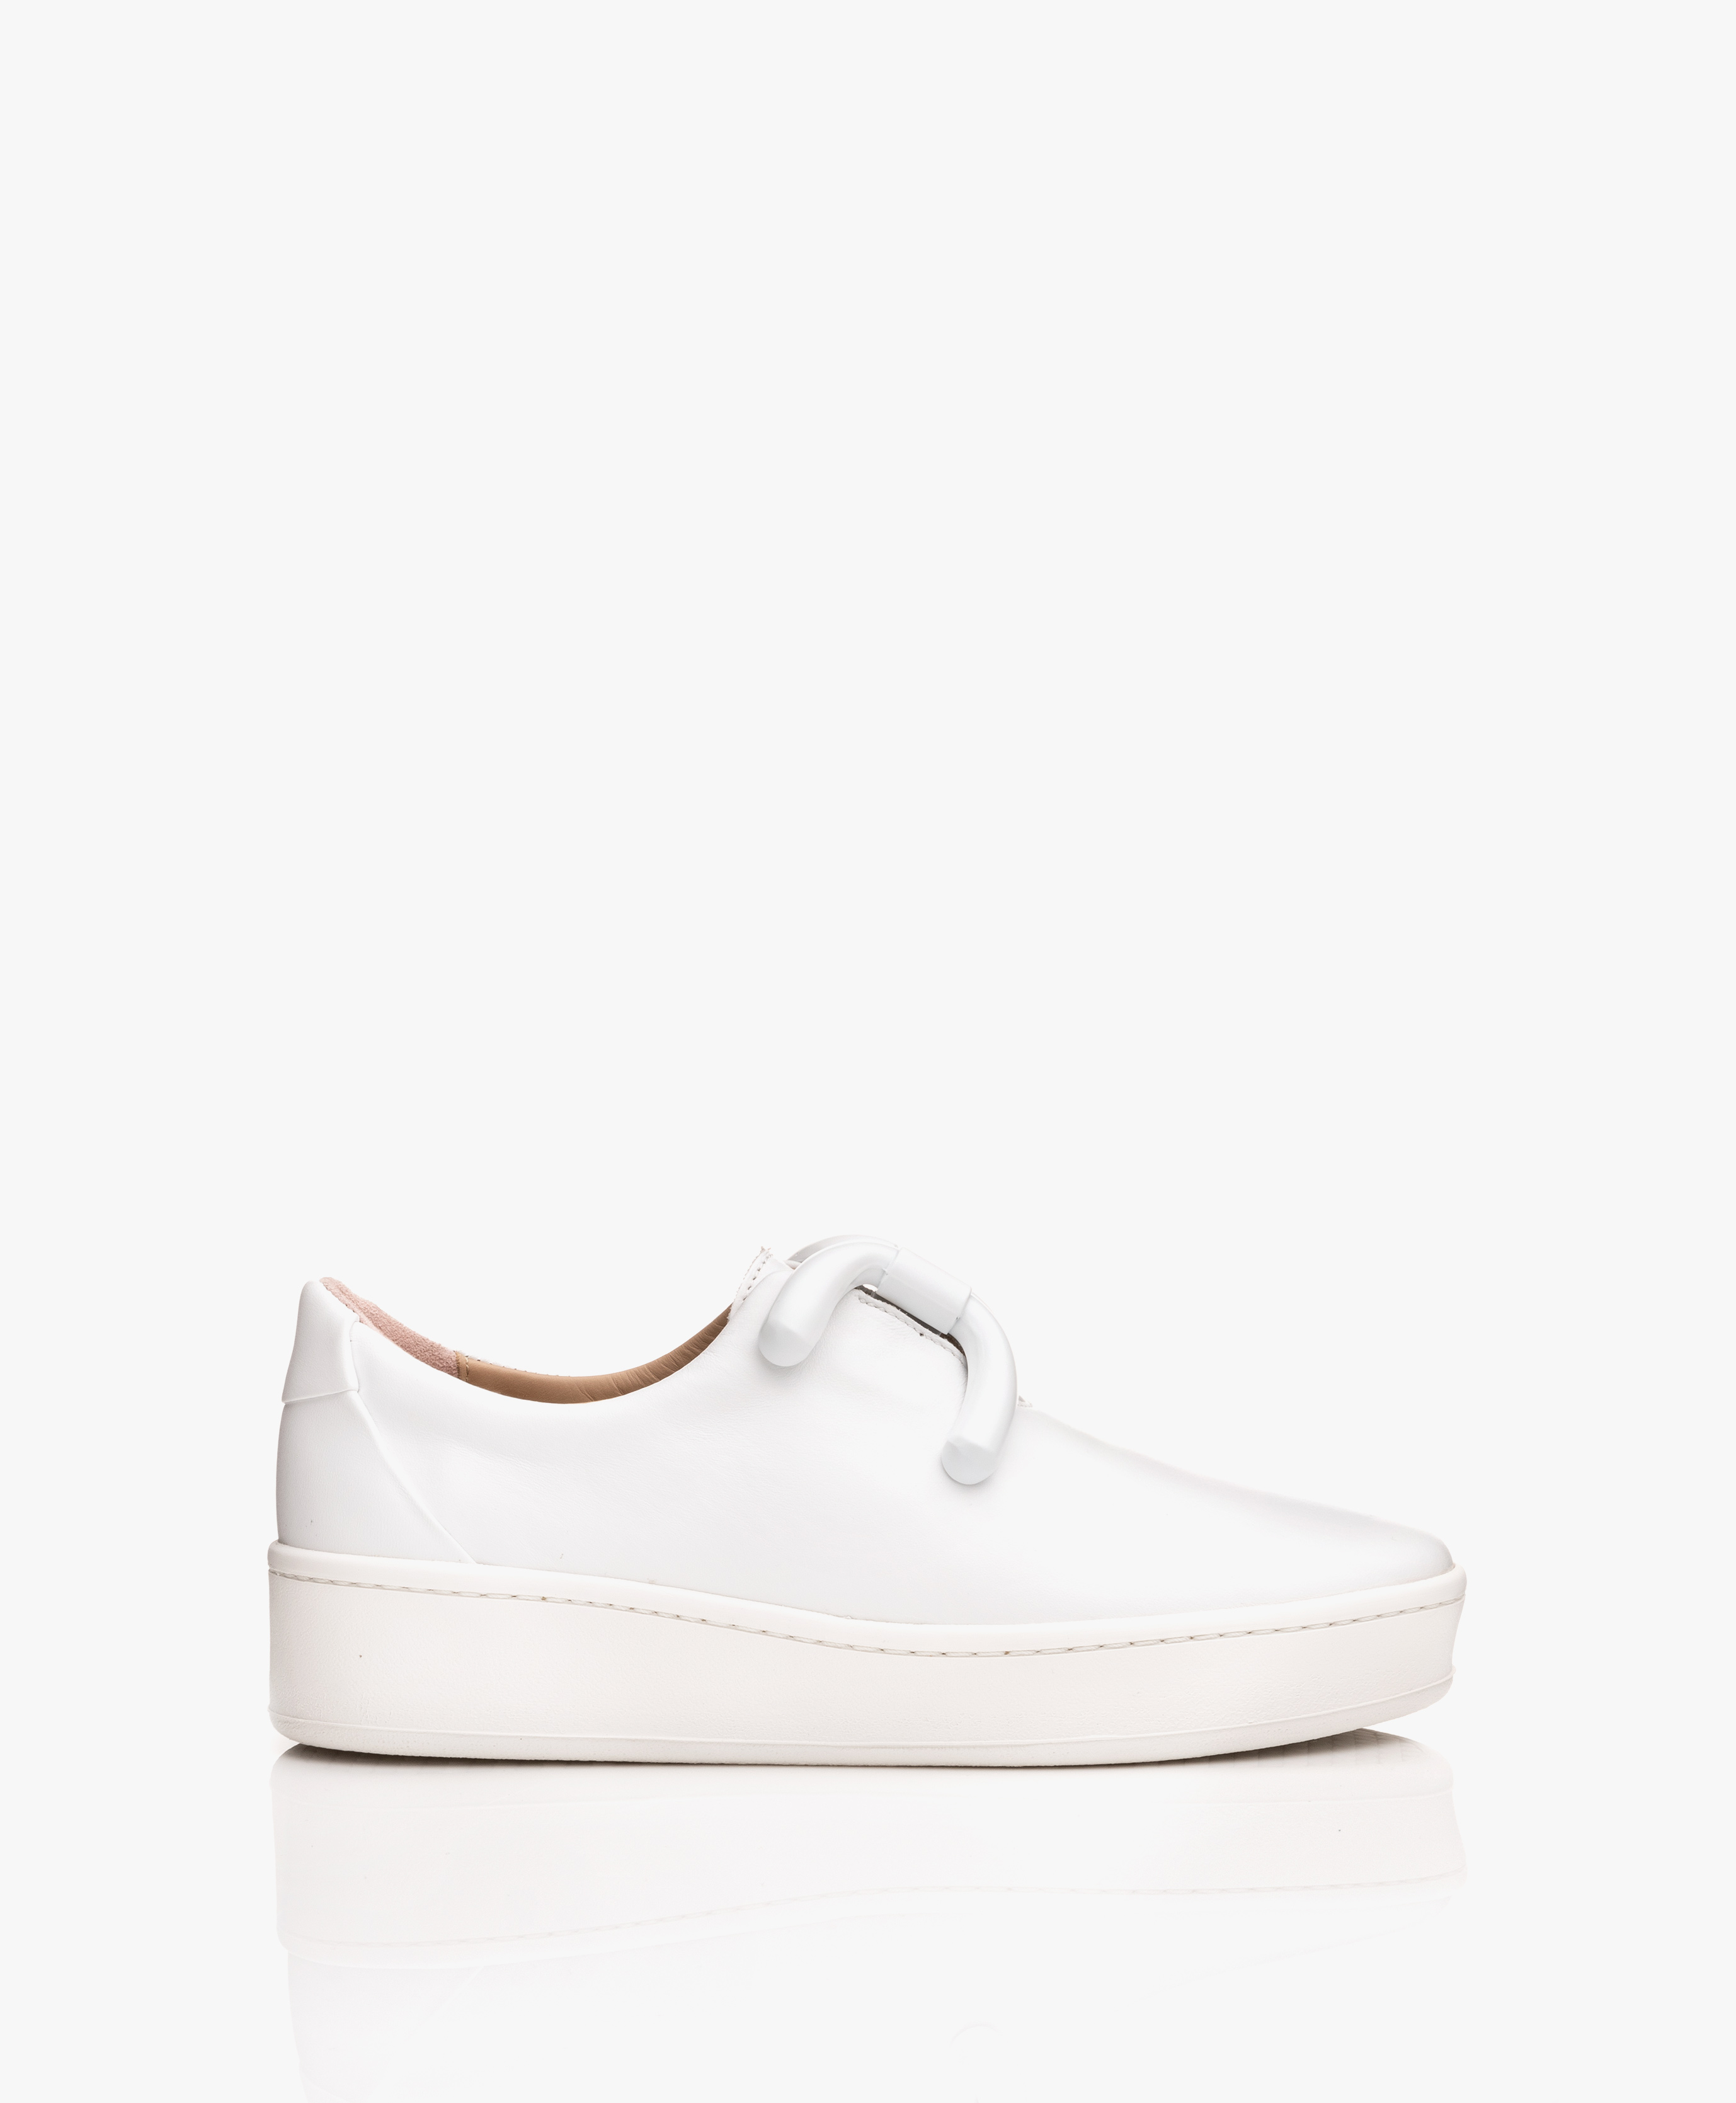 Immagine di An Hour And A Shower Sneakers Knot Platform Slip on in White